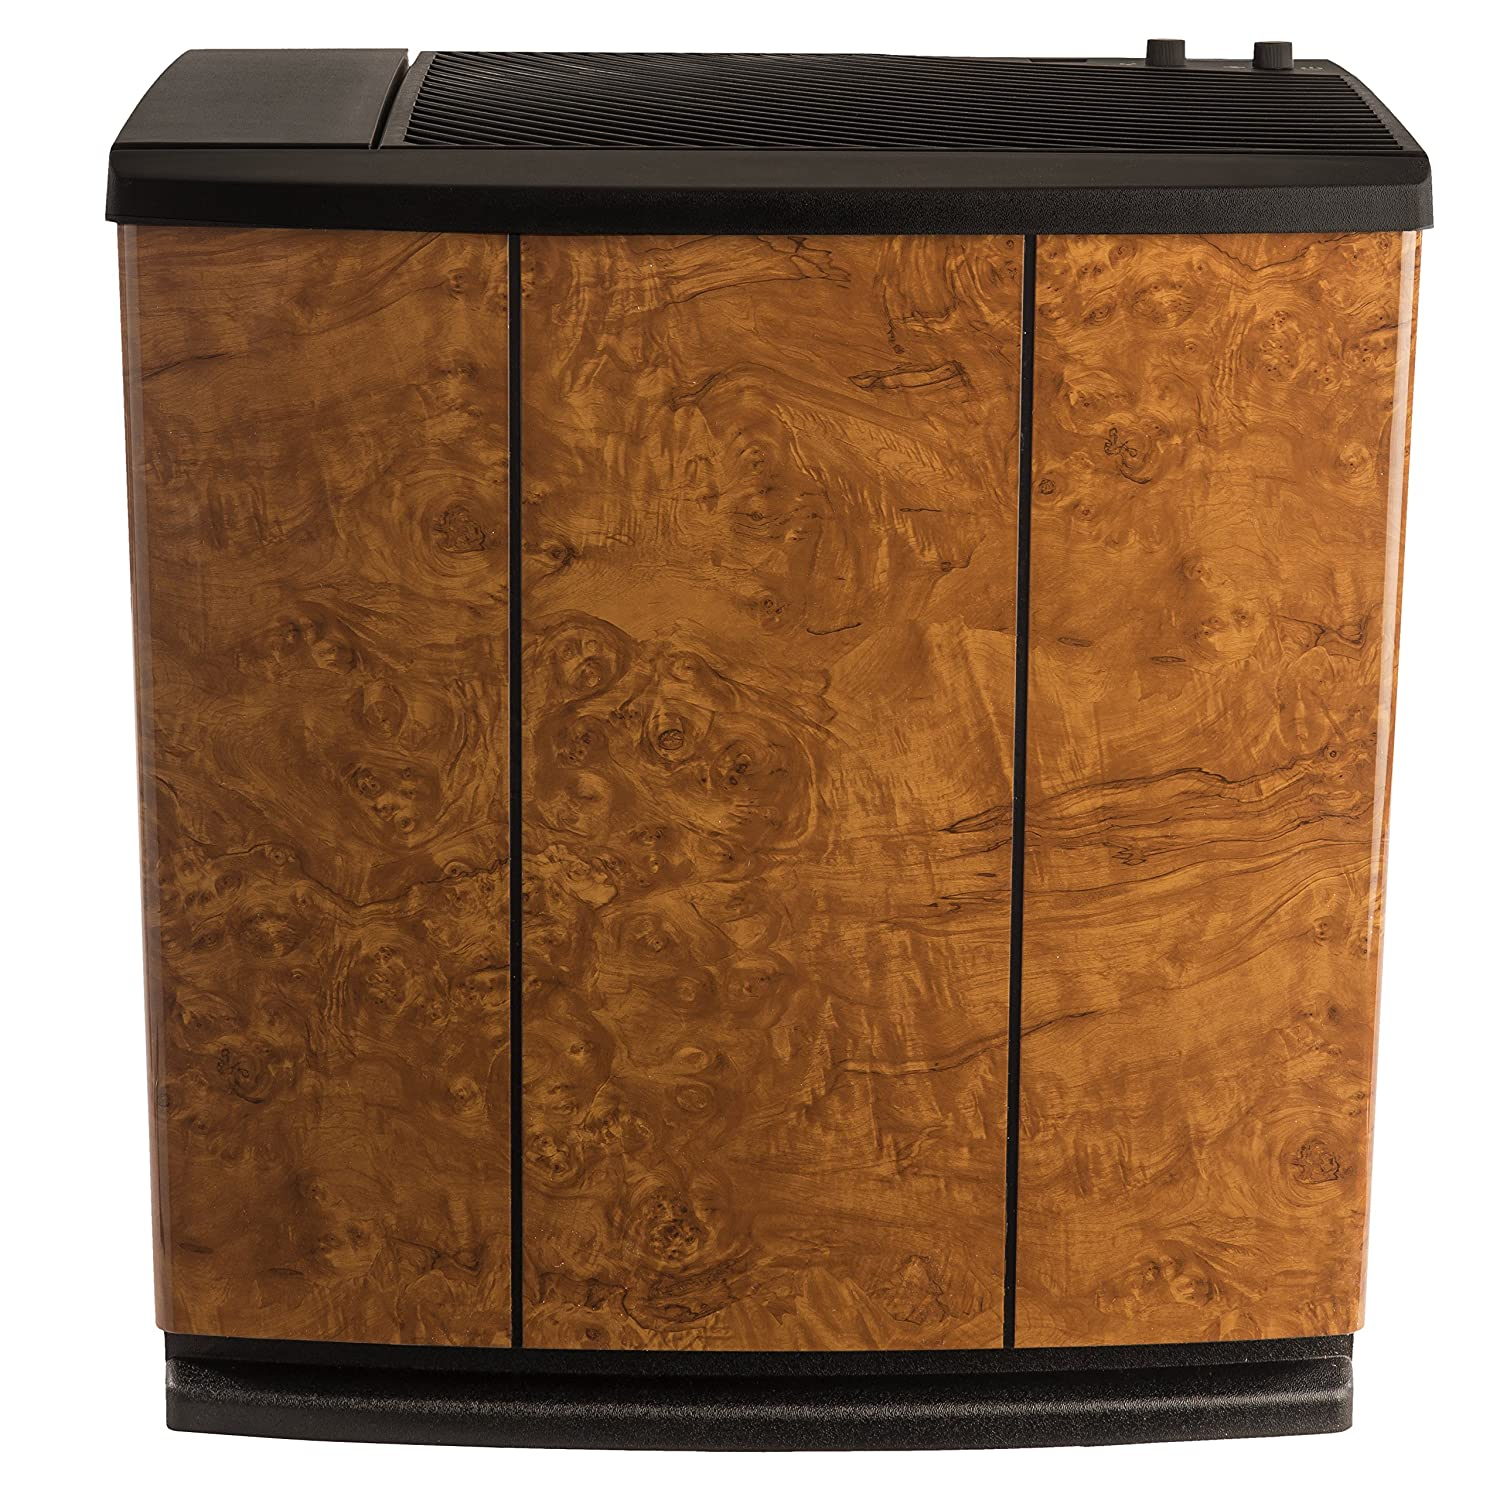 AIRCARE H12-400HB 3-Speed Whole-House Console-Style Evaporative Humidifier, Oak Burl Essick Air H12 400HB